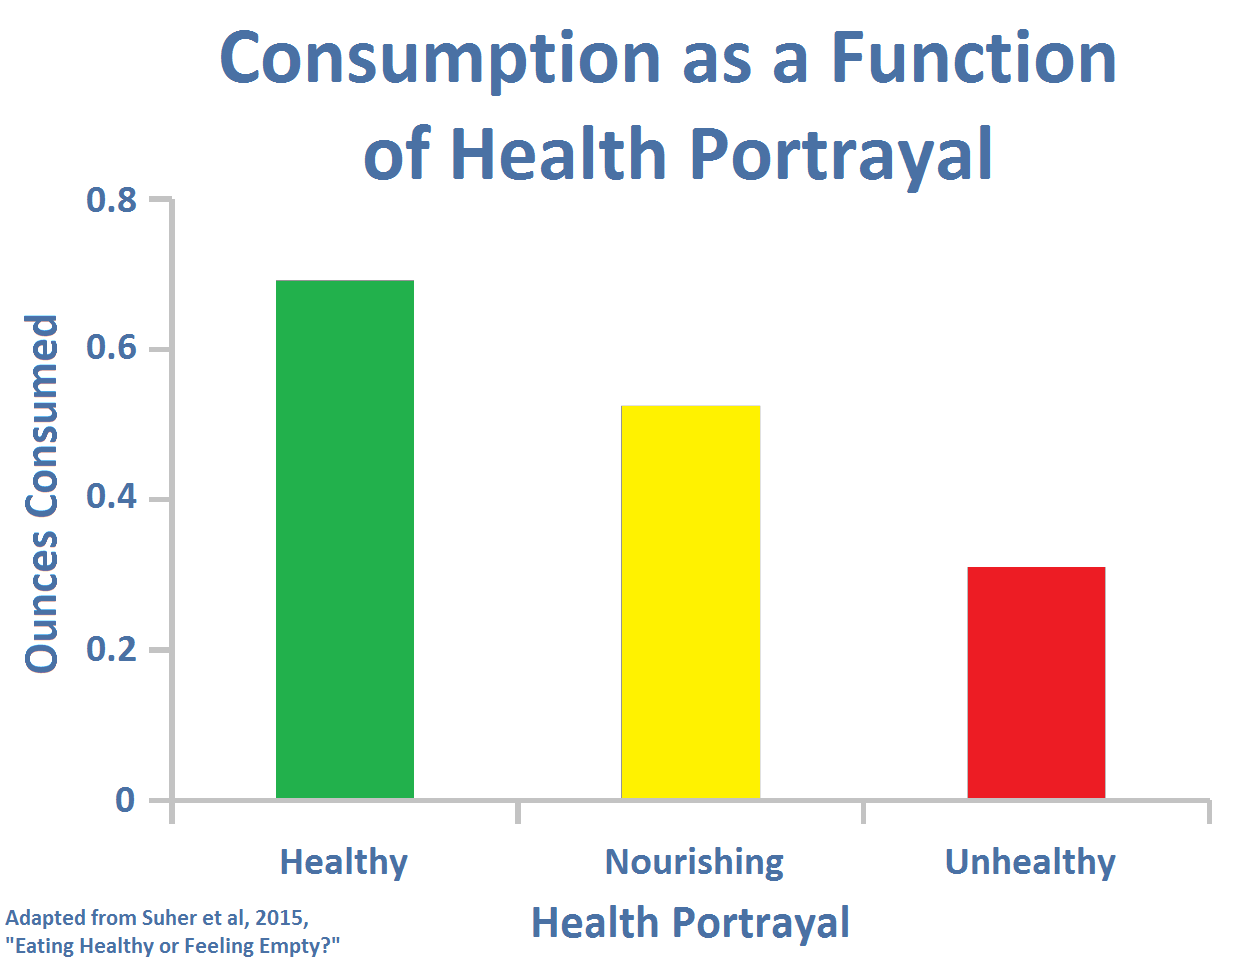 Consumption as a Function of Health Portrayal